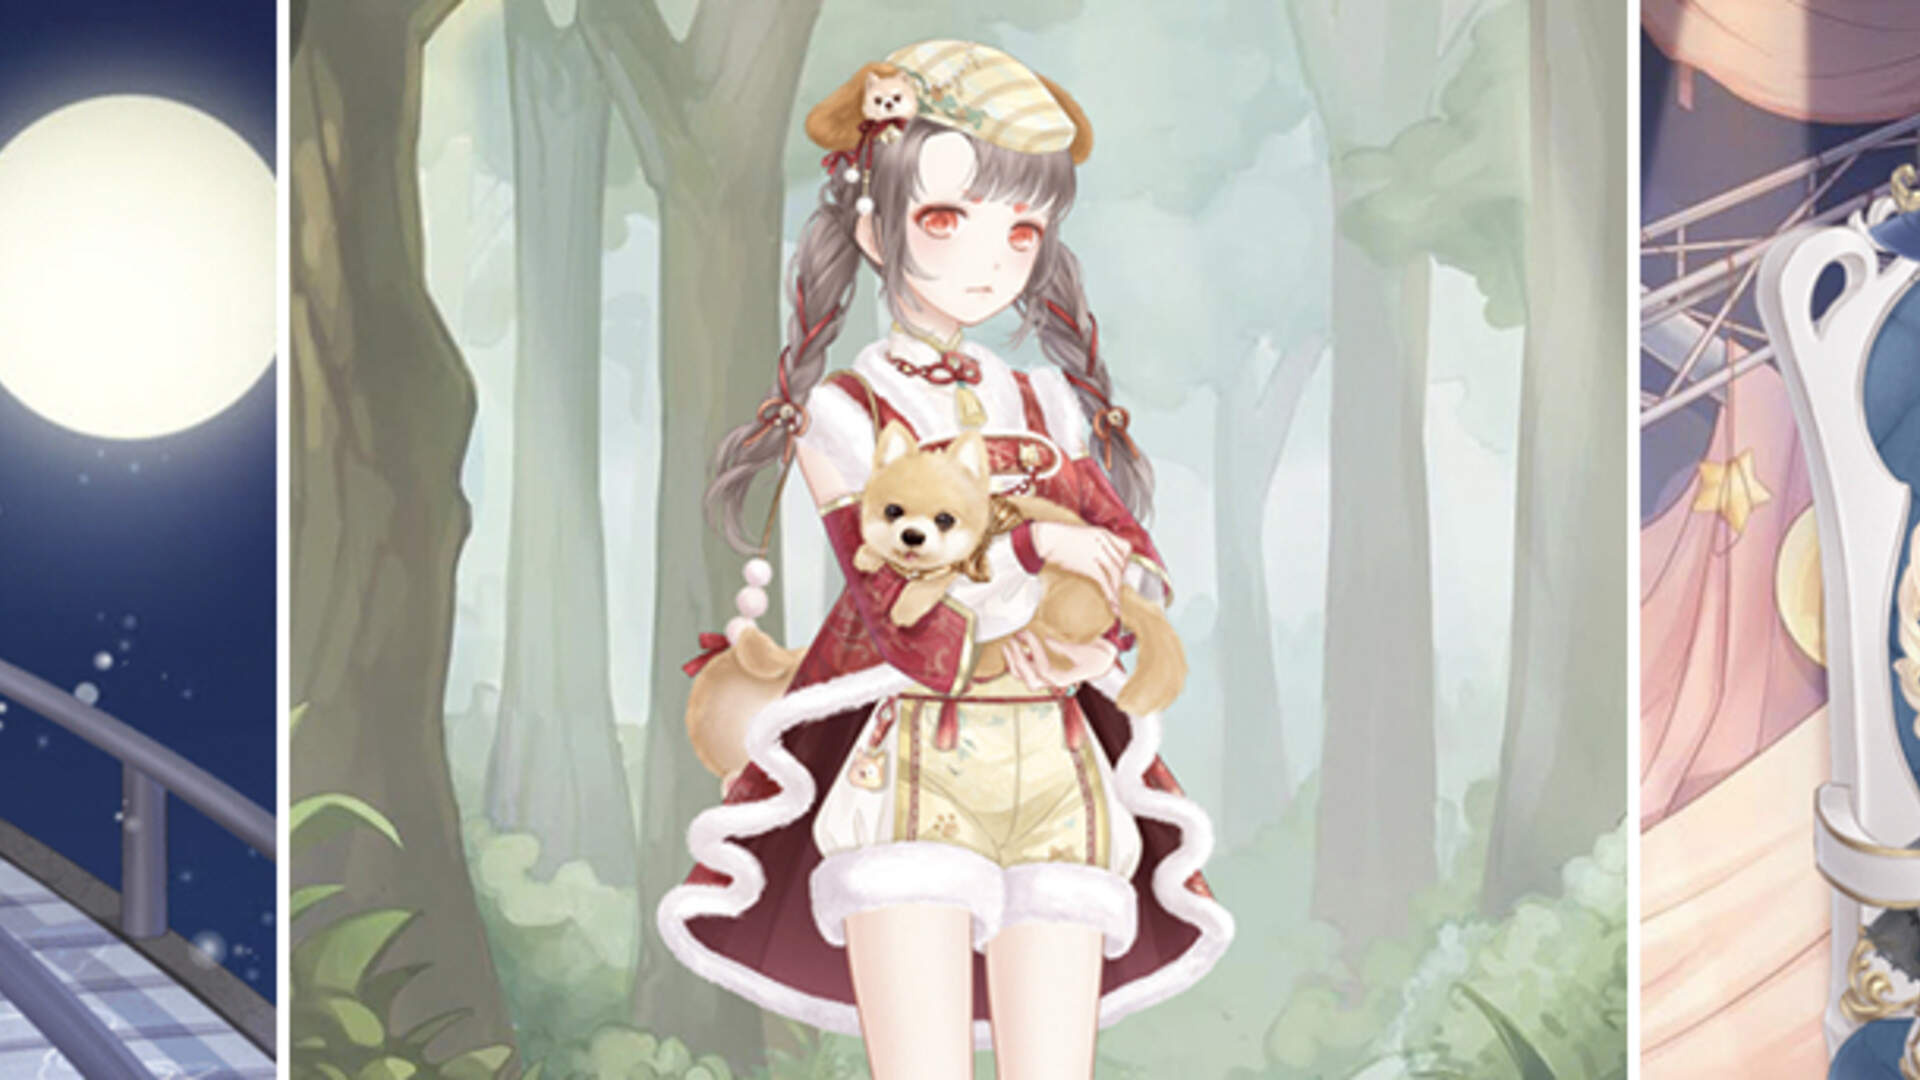 My Dream Closet With No Walls: Behind a Year of Obsessively Playing Love Nikki Dress Up Queen